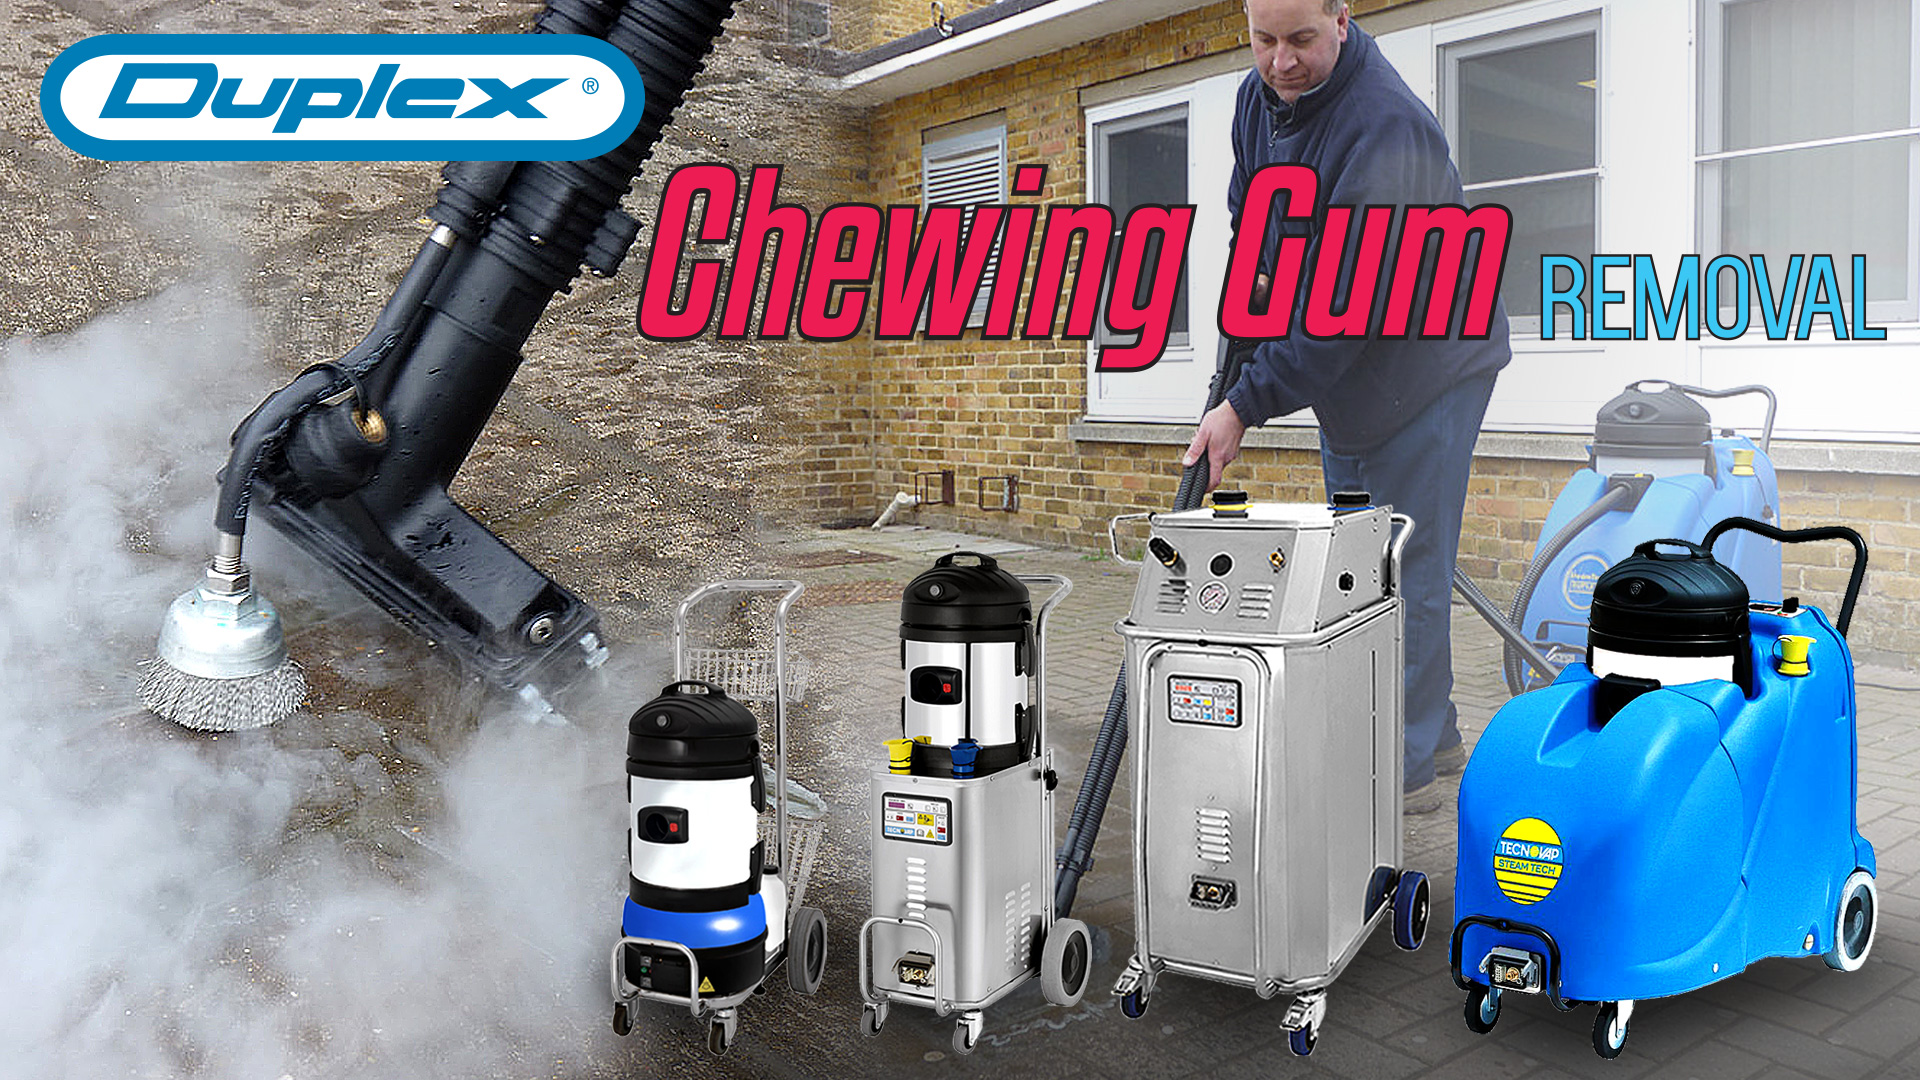 Gum removal system